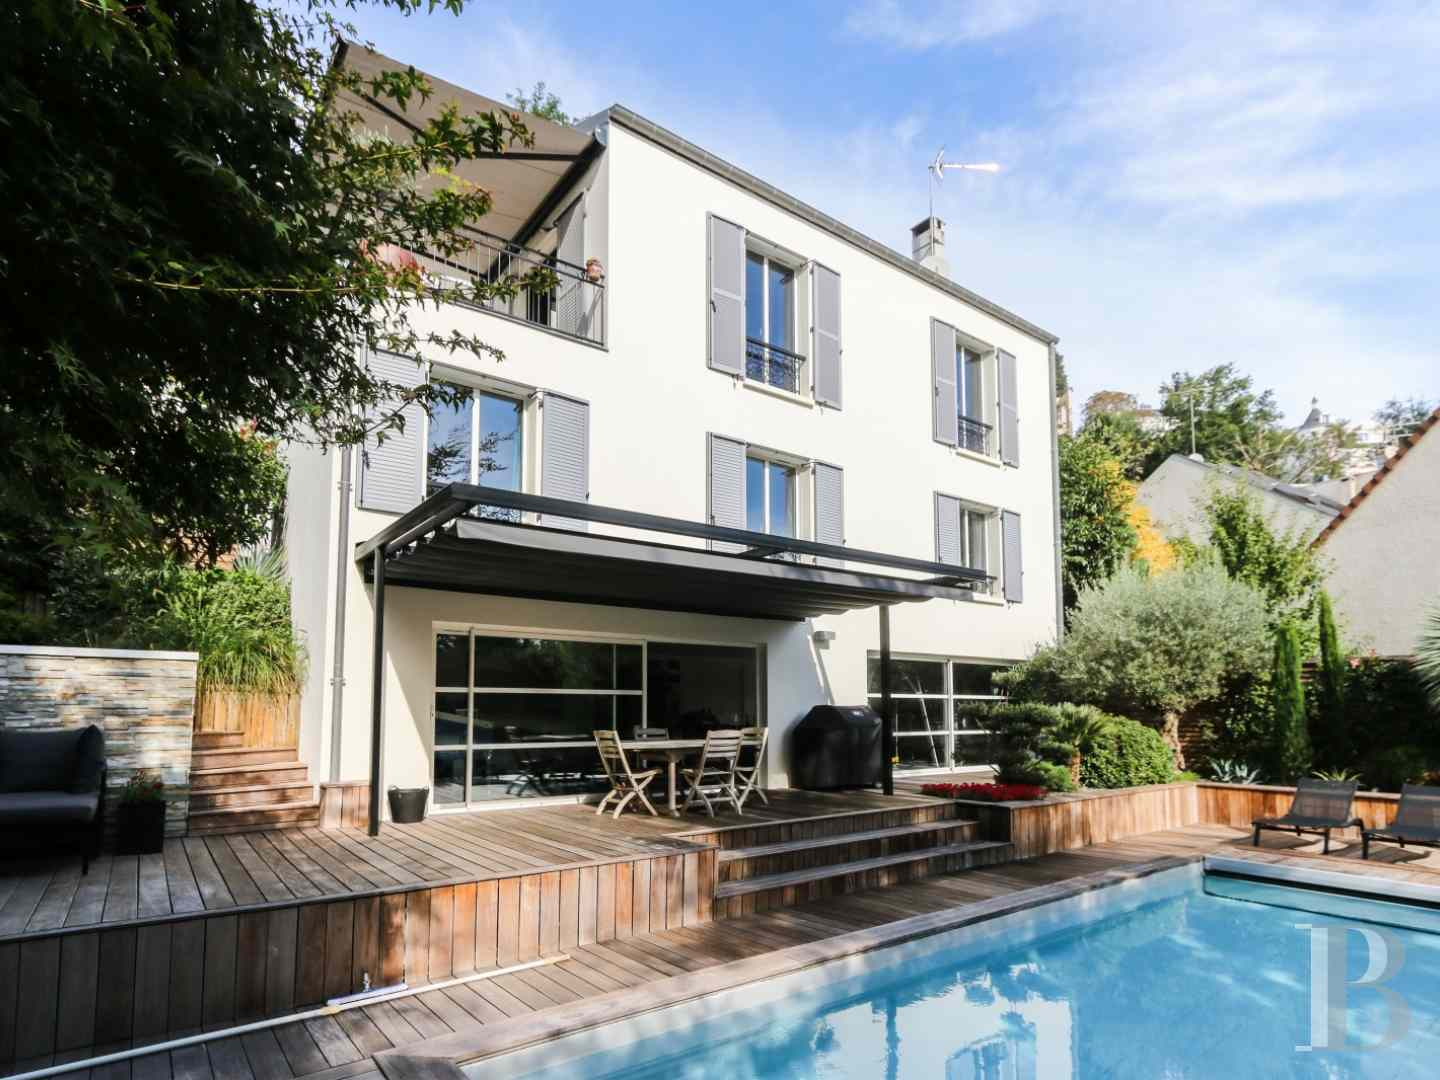 property for sale France paris residences 20th - 1 zoom